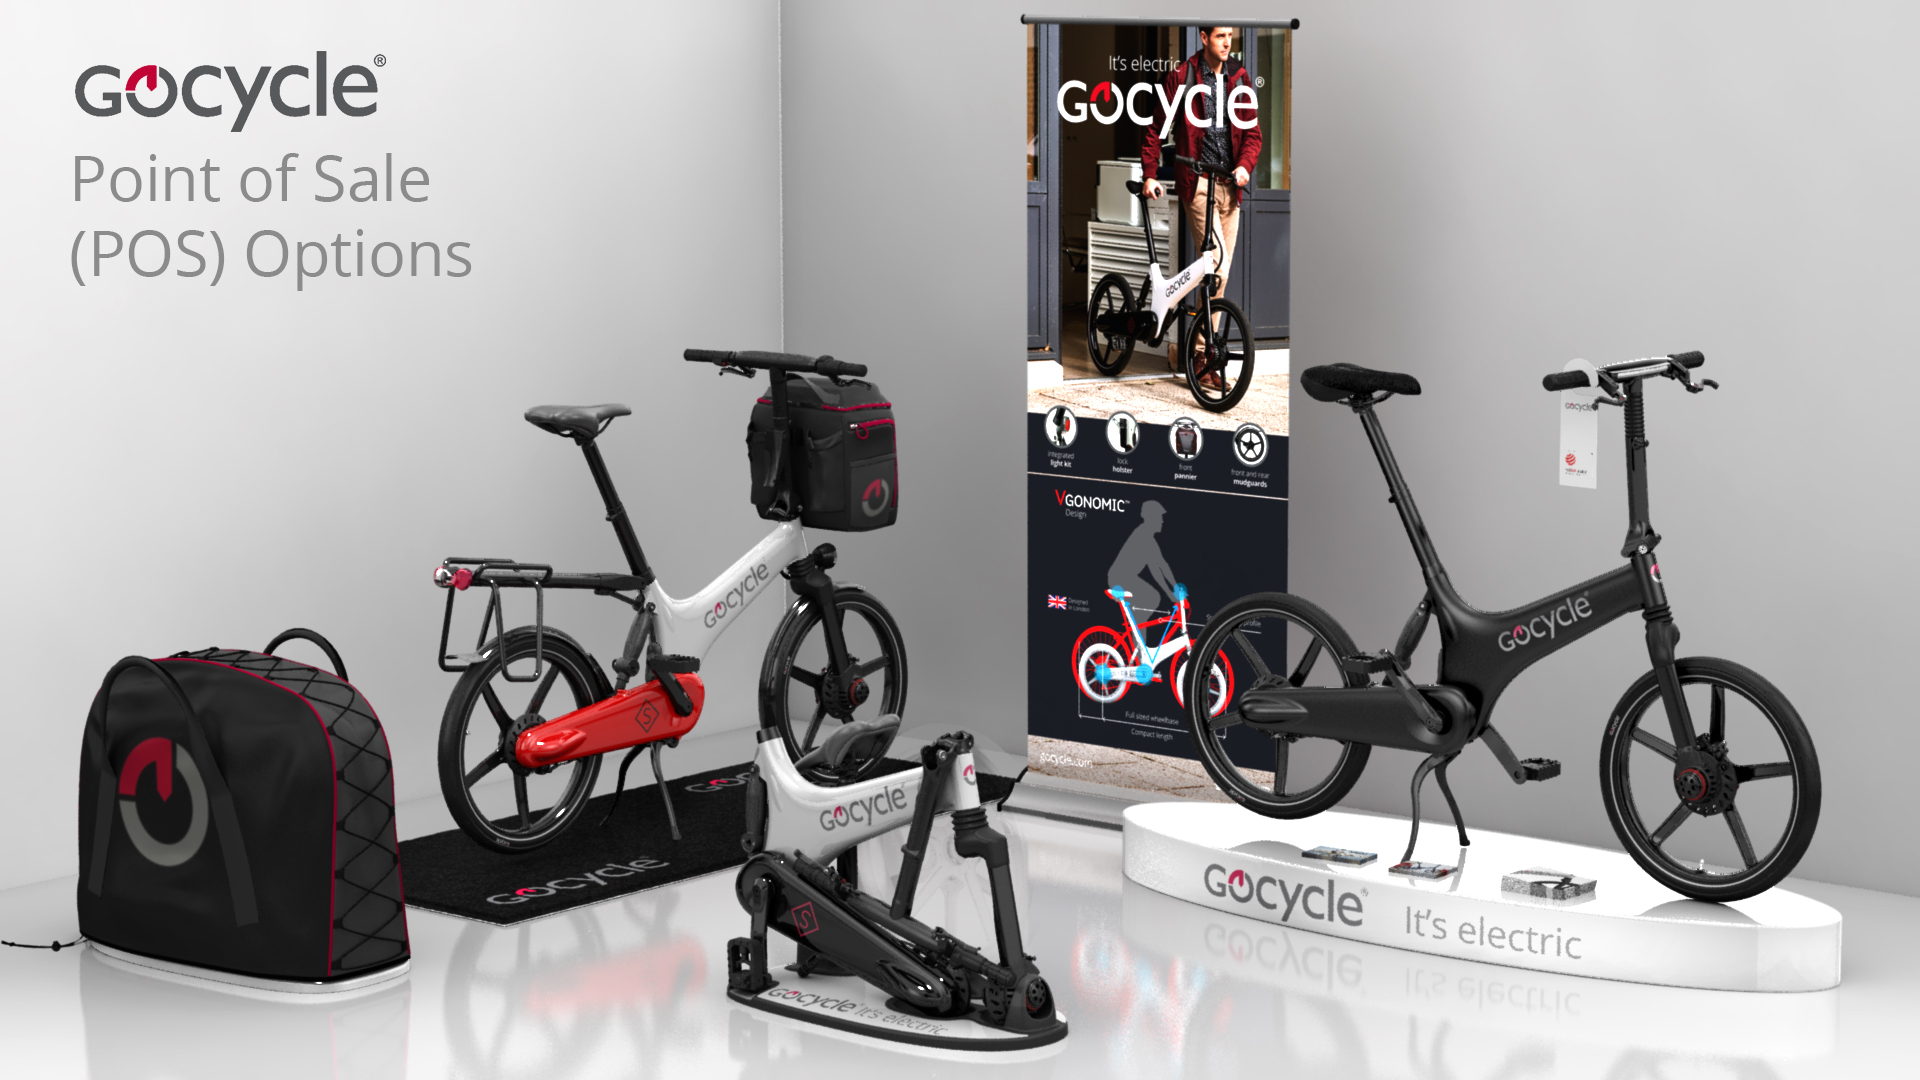 All about Gocycle